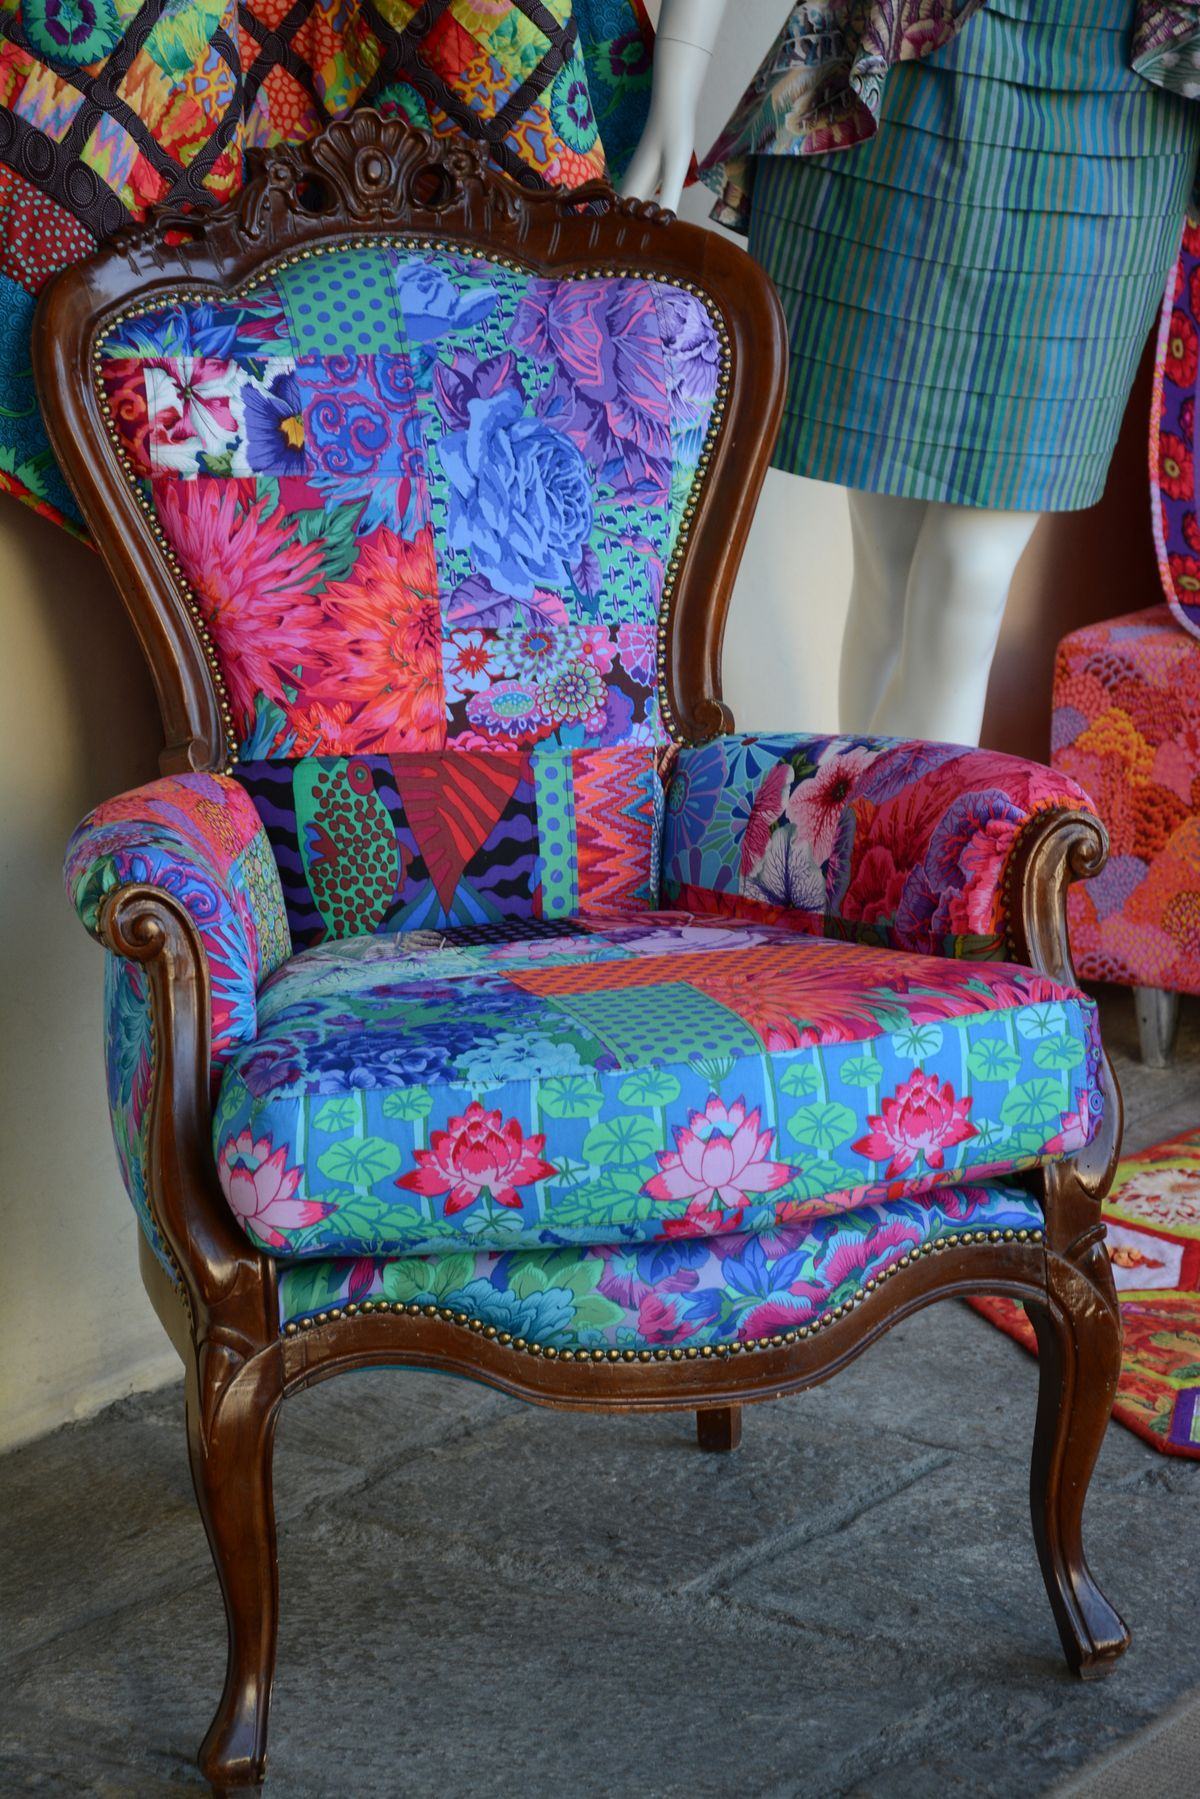 Pin by Mellaney Gray on Furniture Upholstered furniture